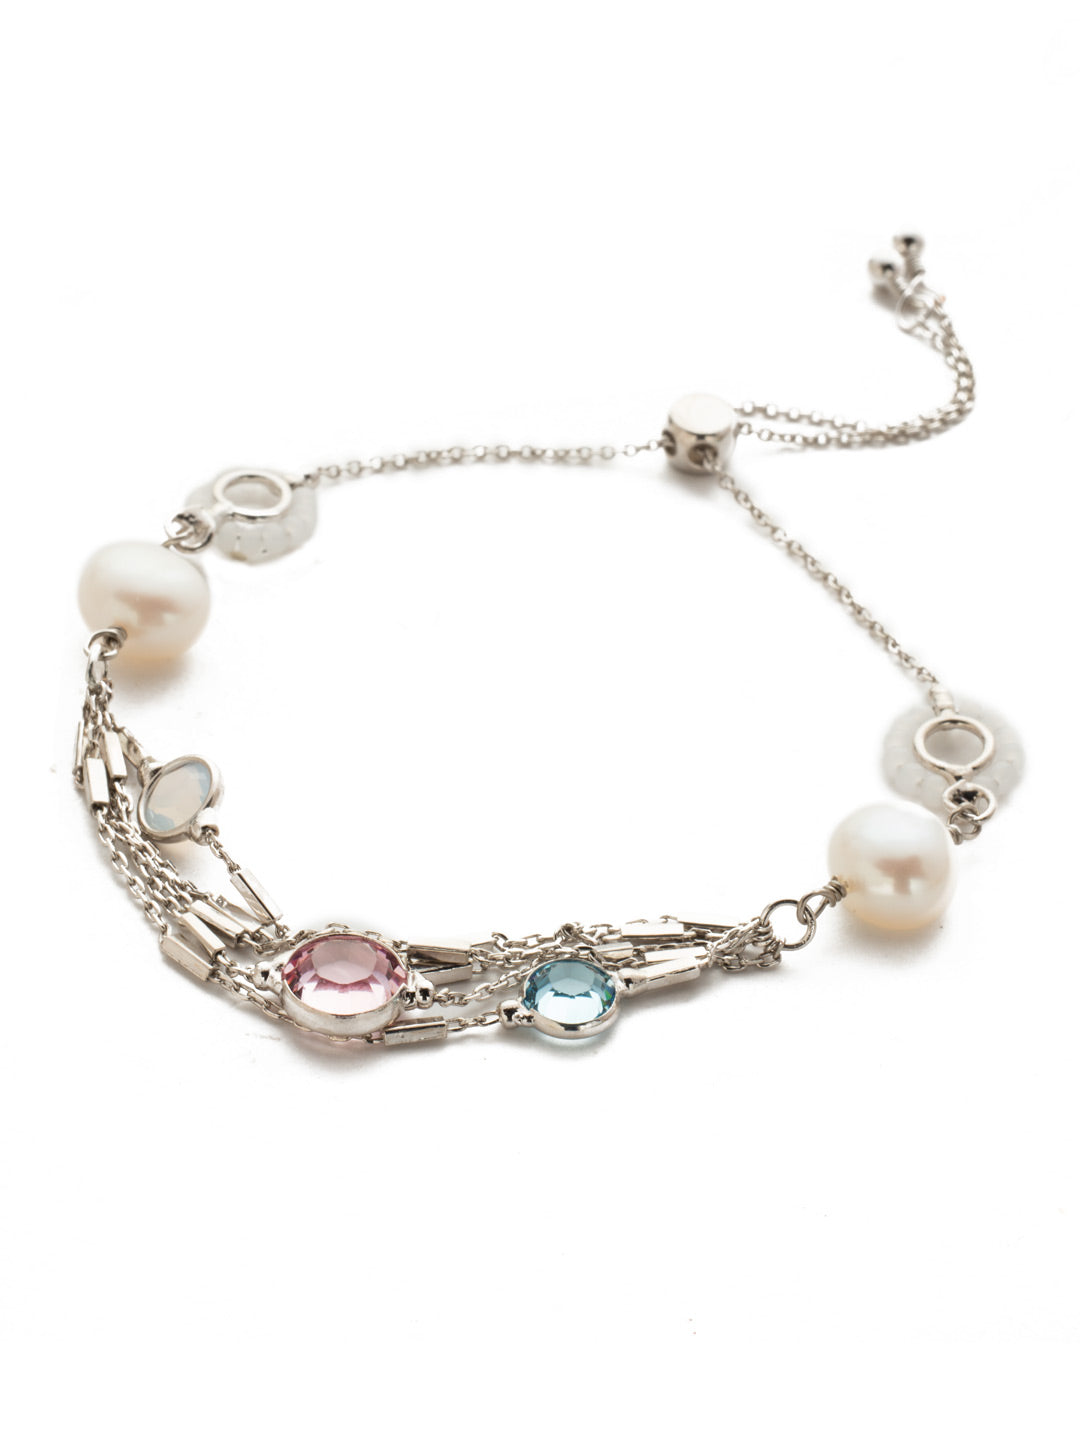 Luminous Slider Bracelet - BEK2RHSSU